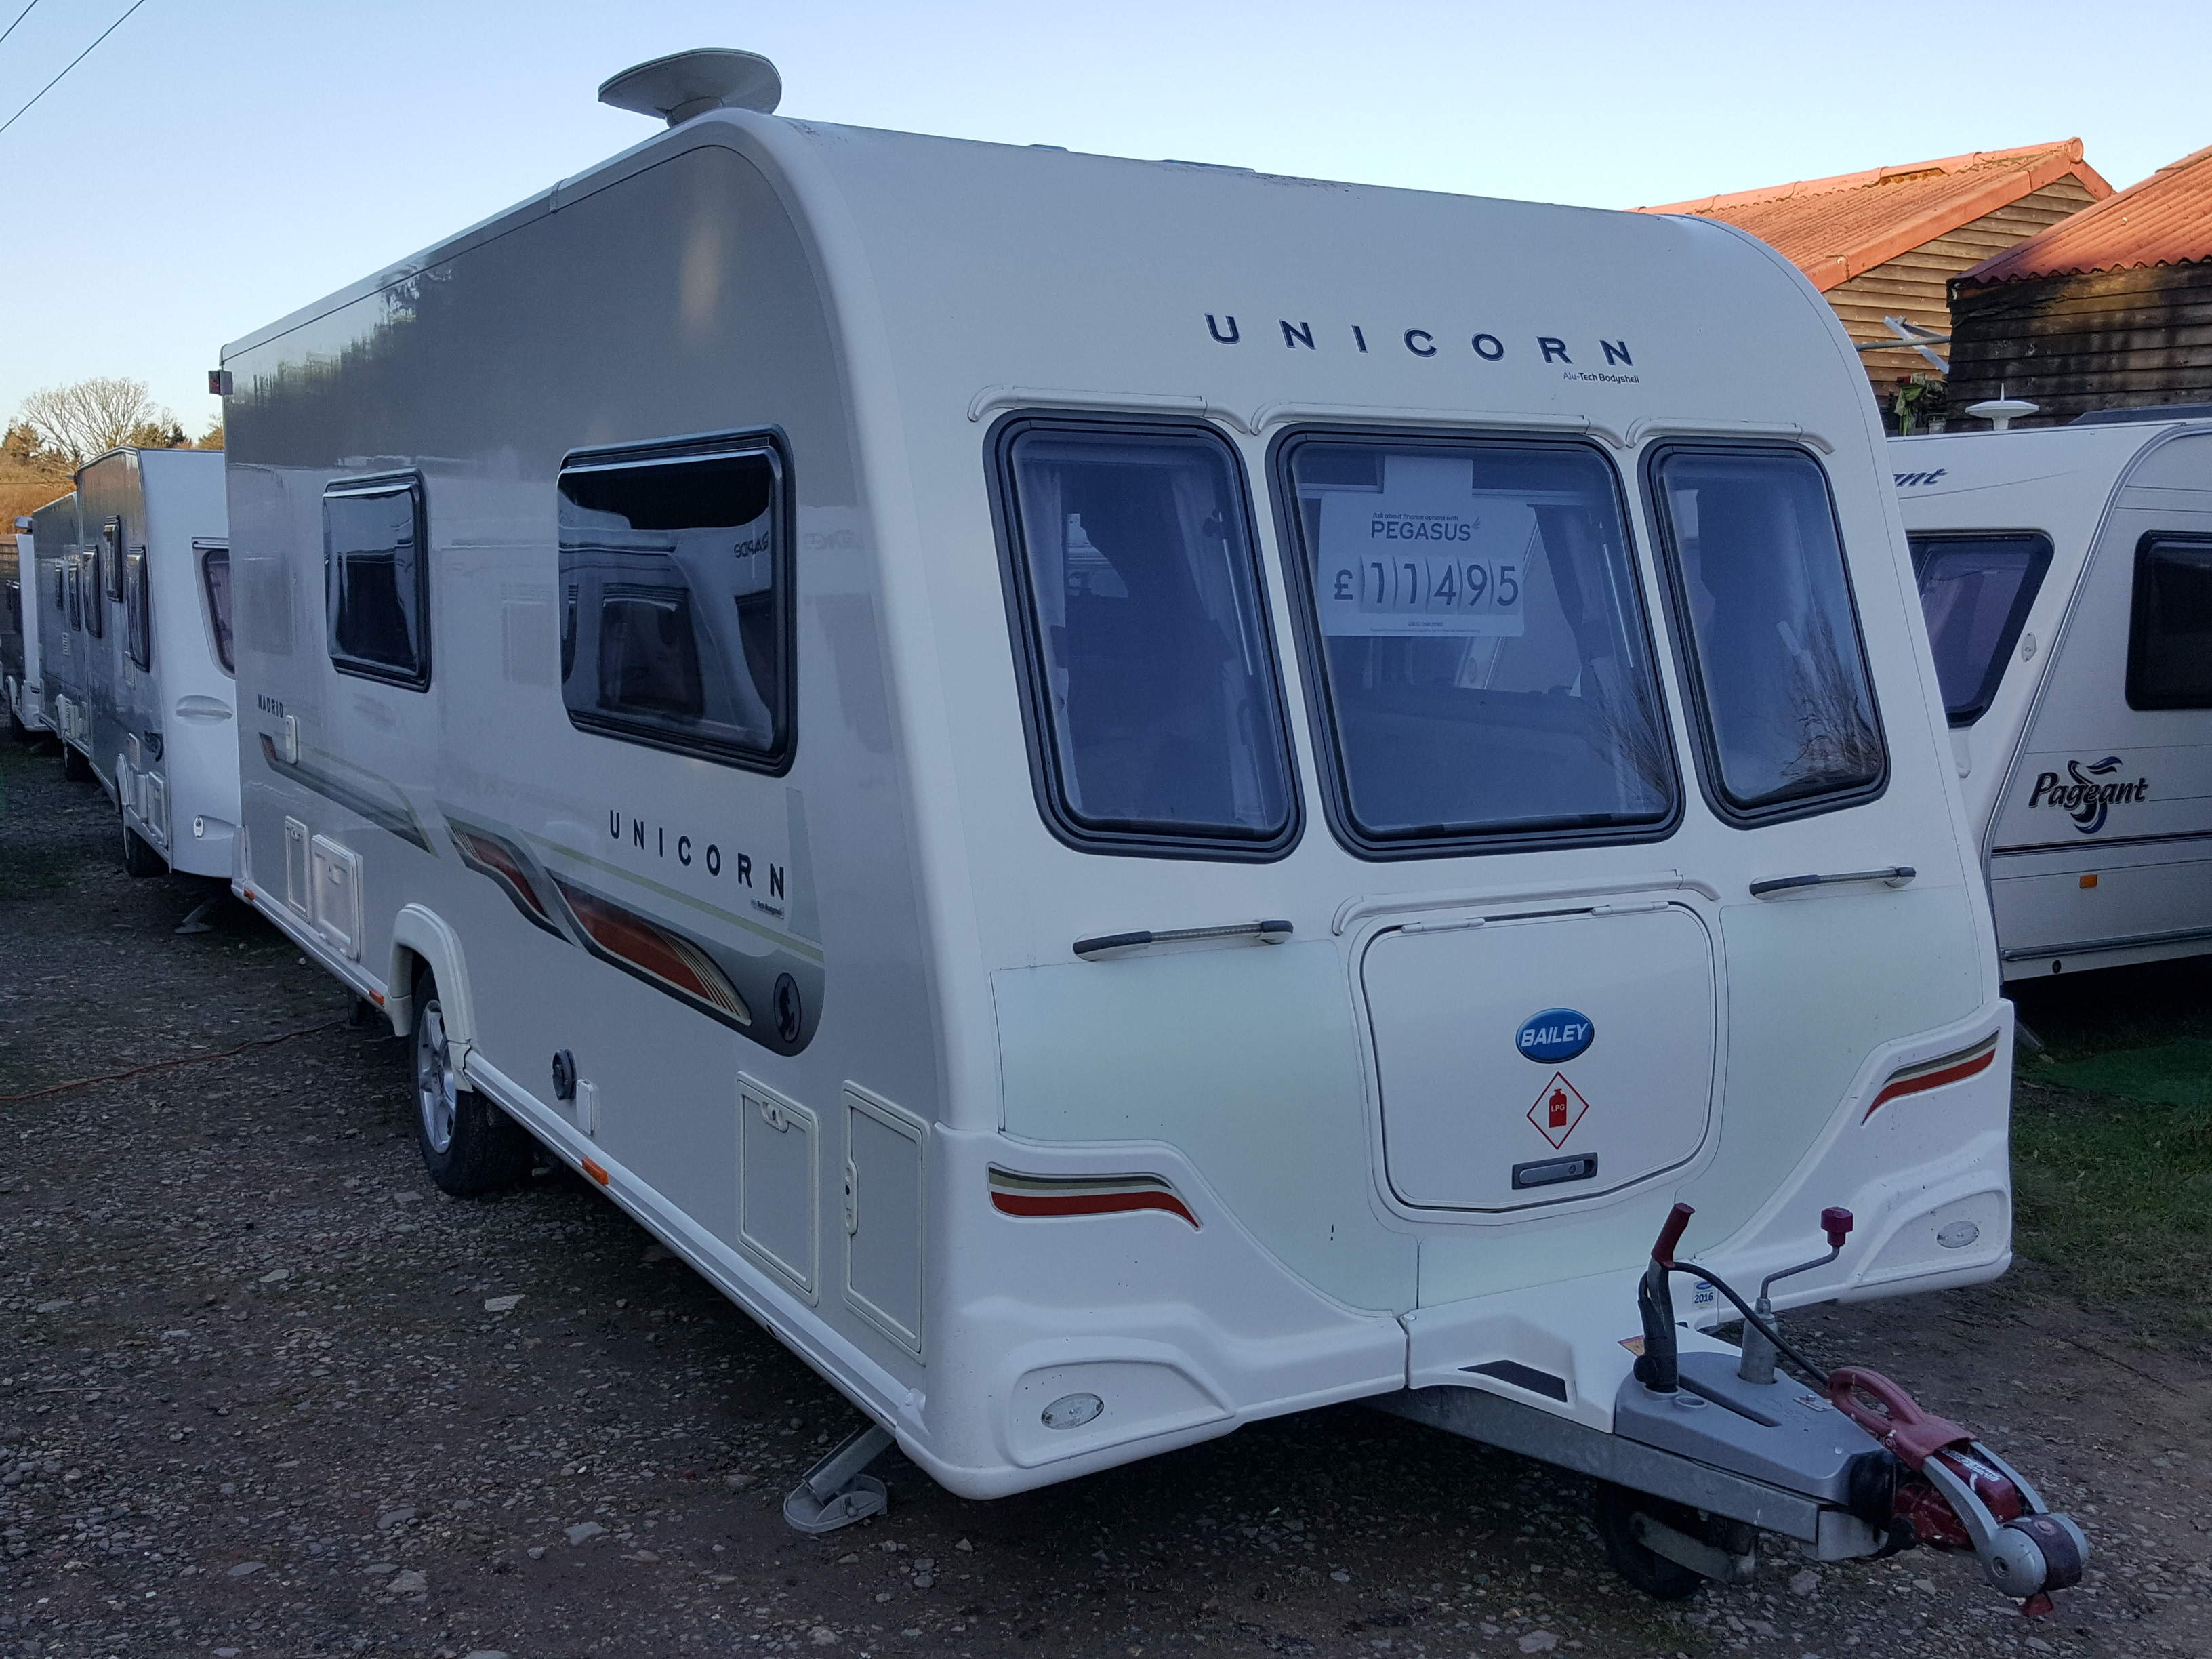 SUPERB 2011 Bailey Unicorn Madrid 4 Berth Side Dinette End Washroom Caravan with Motor Mover